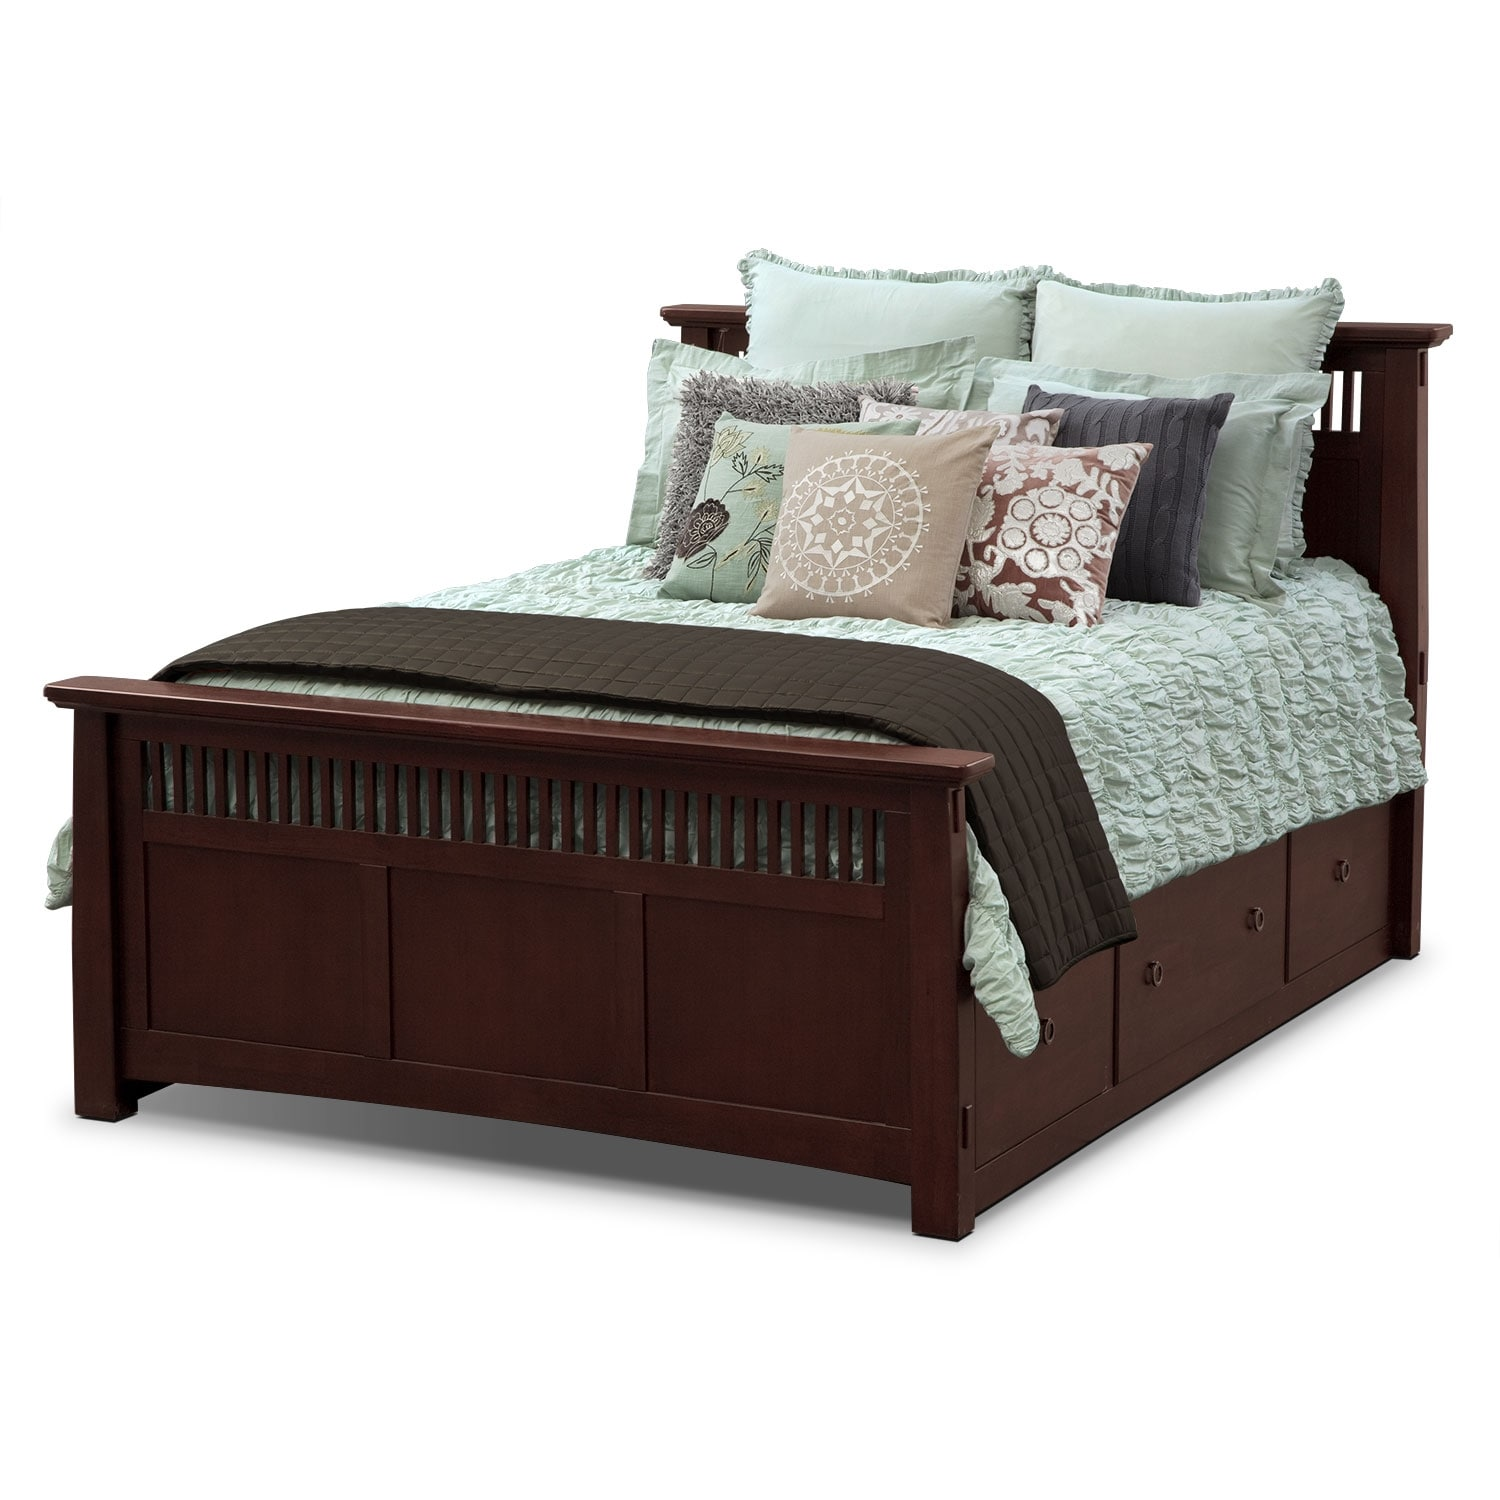 Kaitlin II King Bedding Set